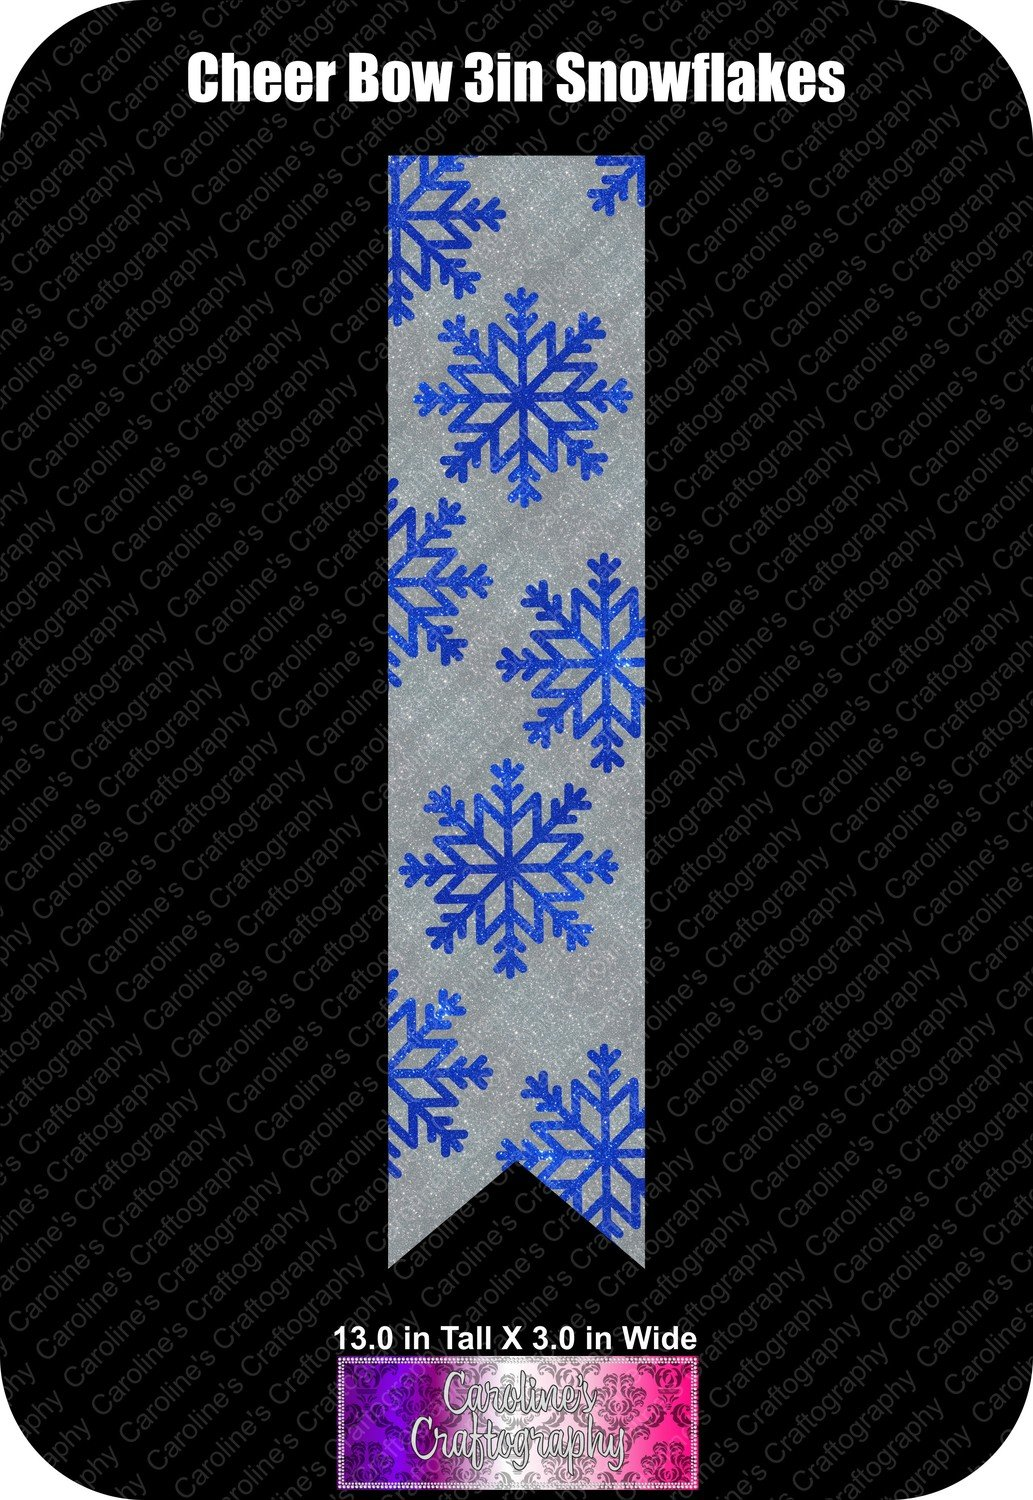 Snowflakes 3in Cheer Bow Vinyl